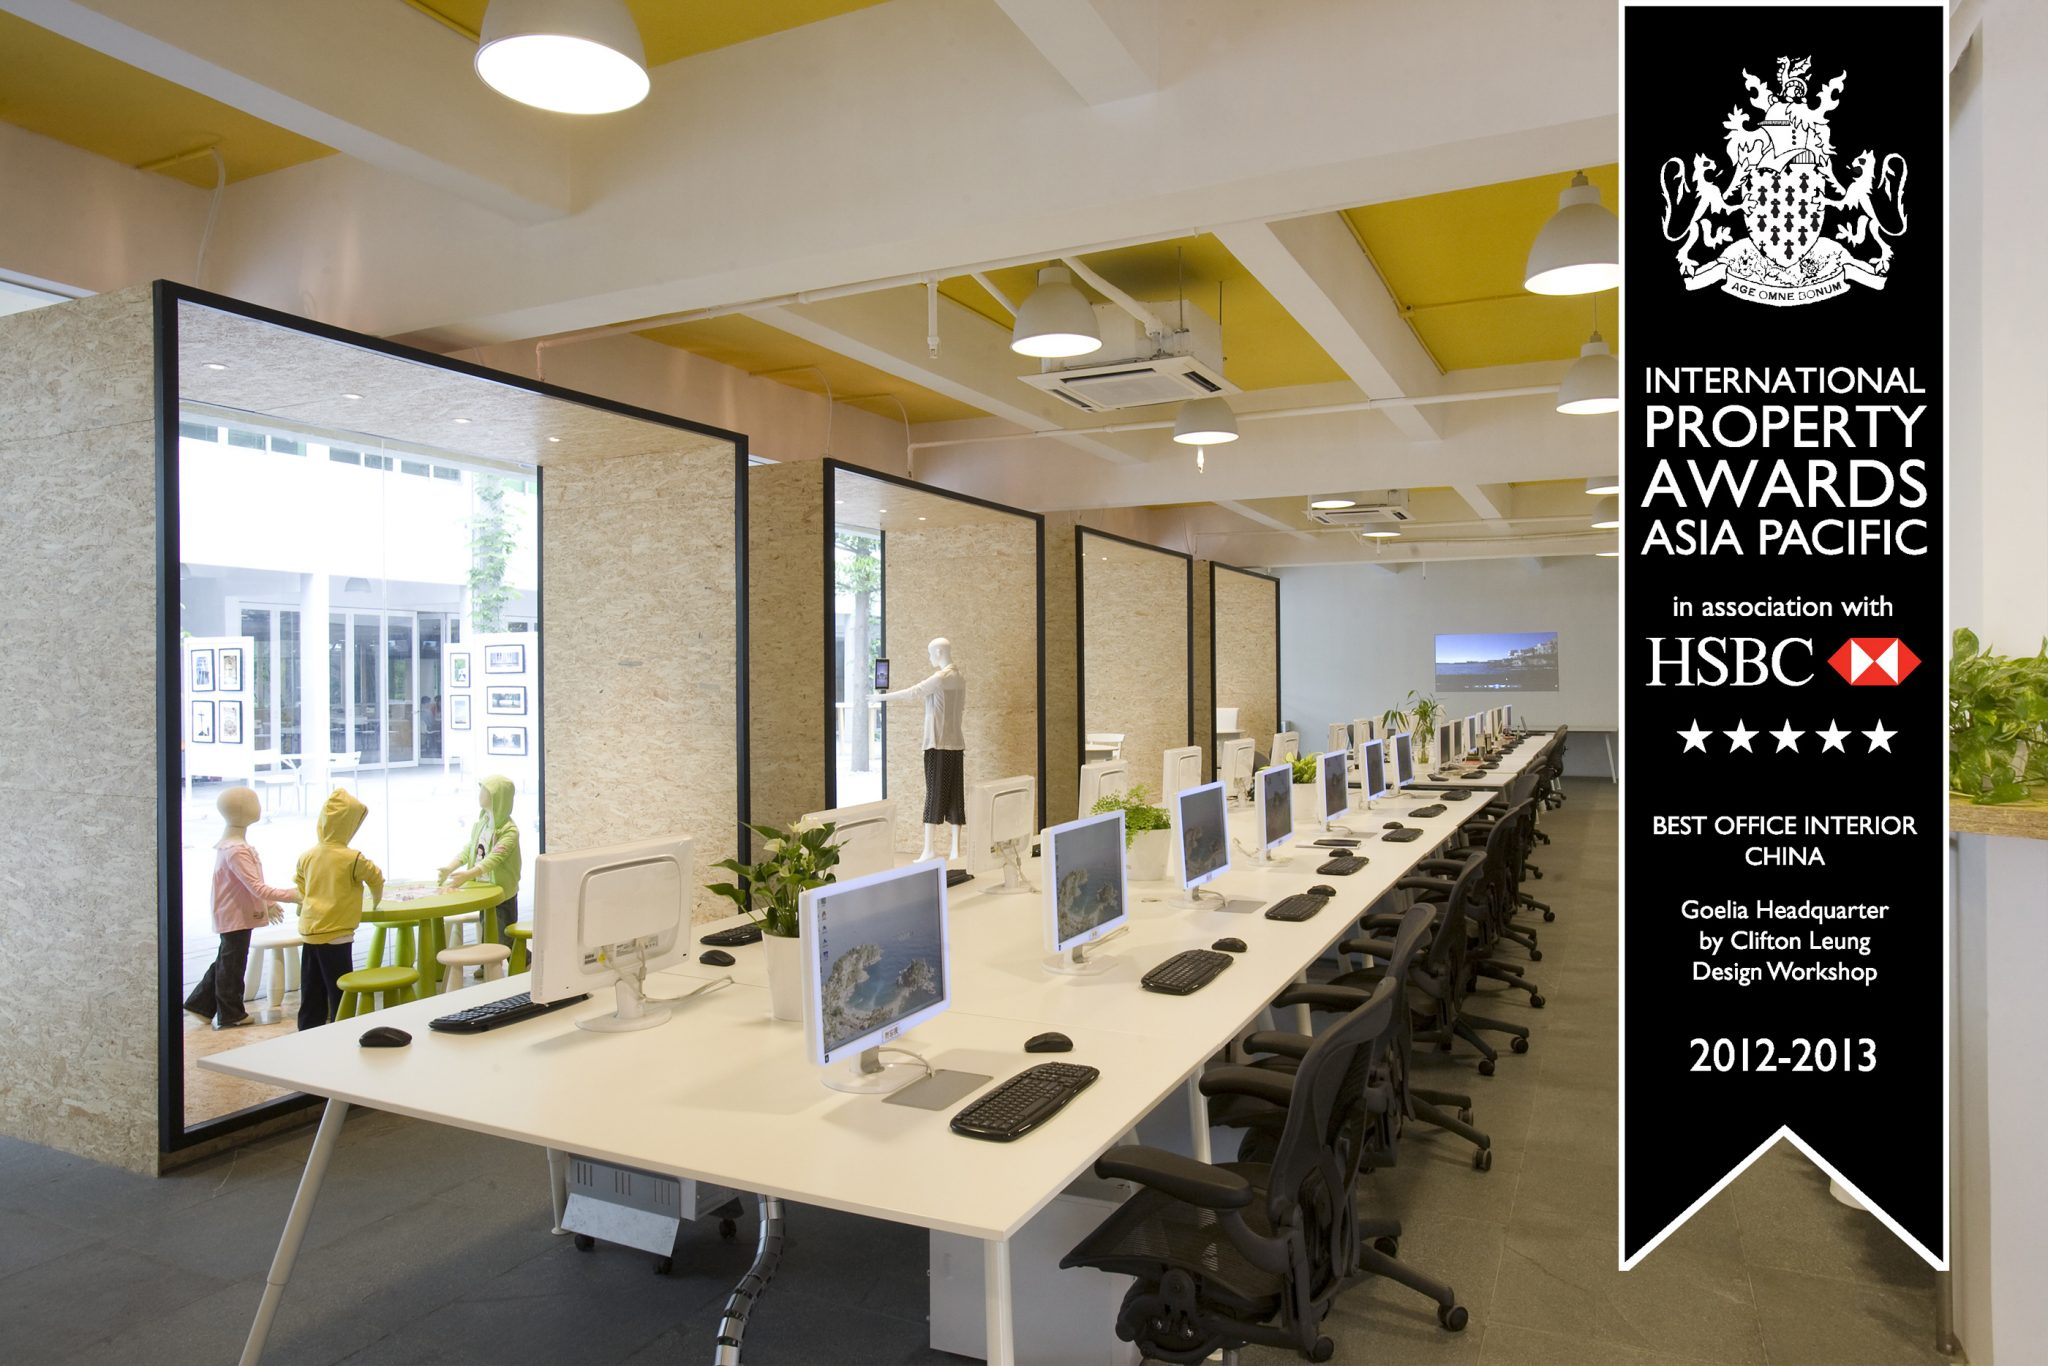 Goelia Headquarter – Best Office Interior China, Asia Pacific Property Awards 2012/13